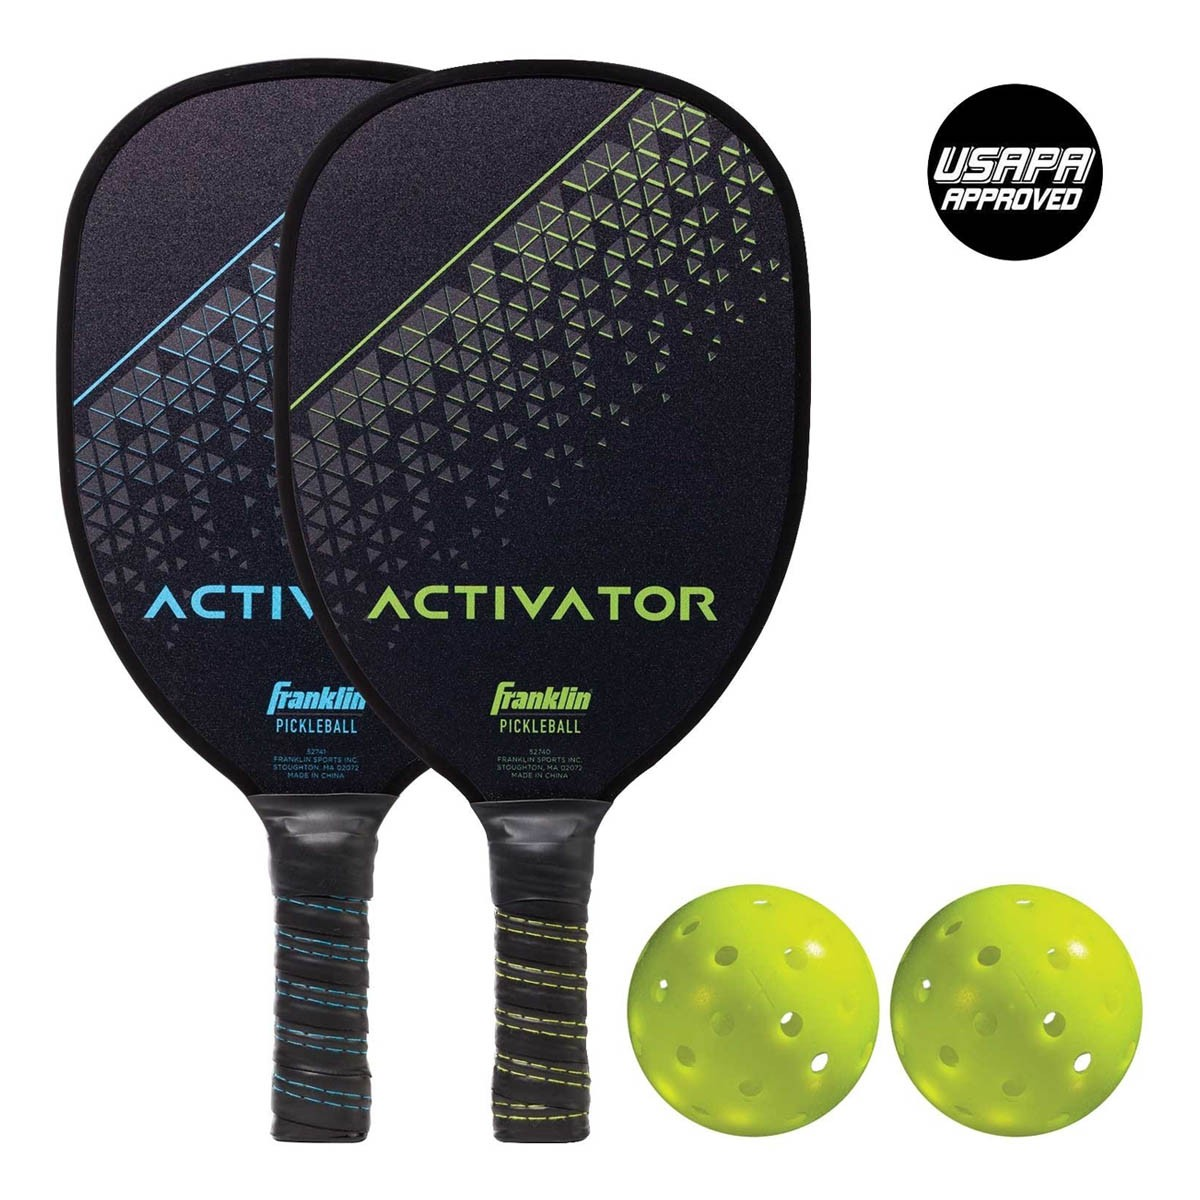 52742 Franklin Activator 2 Player Wood Pickleball Paddle and Ball Set MAIN